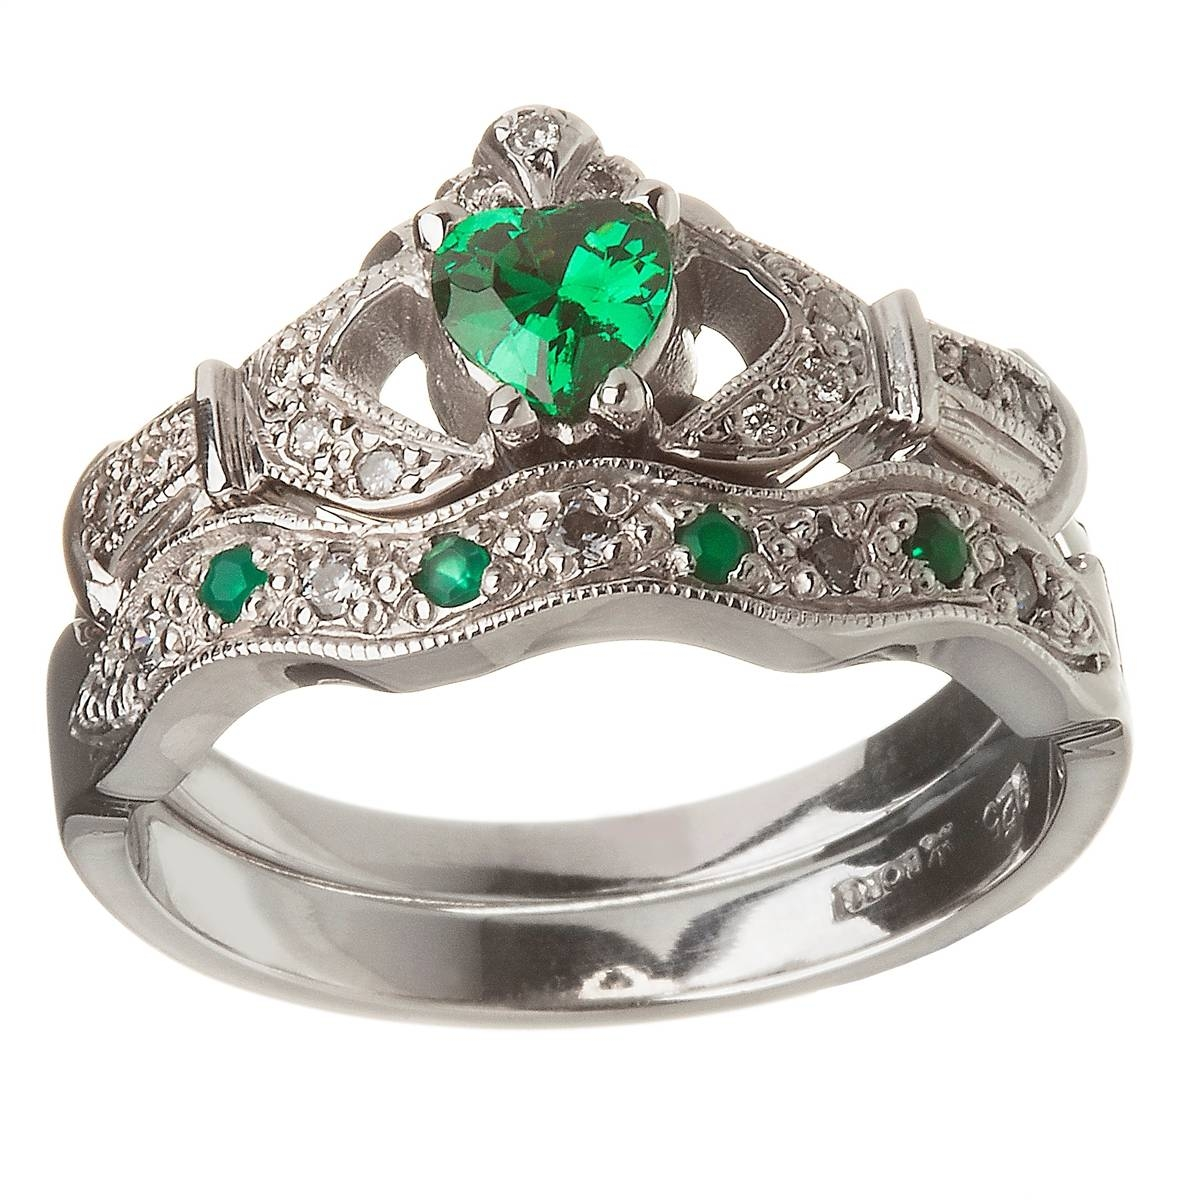 14K White Gold Emerald Set Heart Claddagh Ring & Wedding Ring Set Intended For Mens Claddagh Wedding Rings (View 1 of 15)